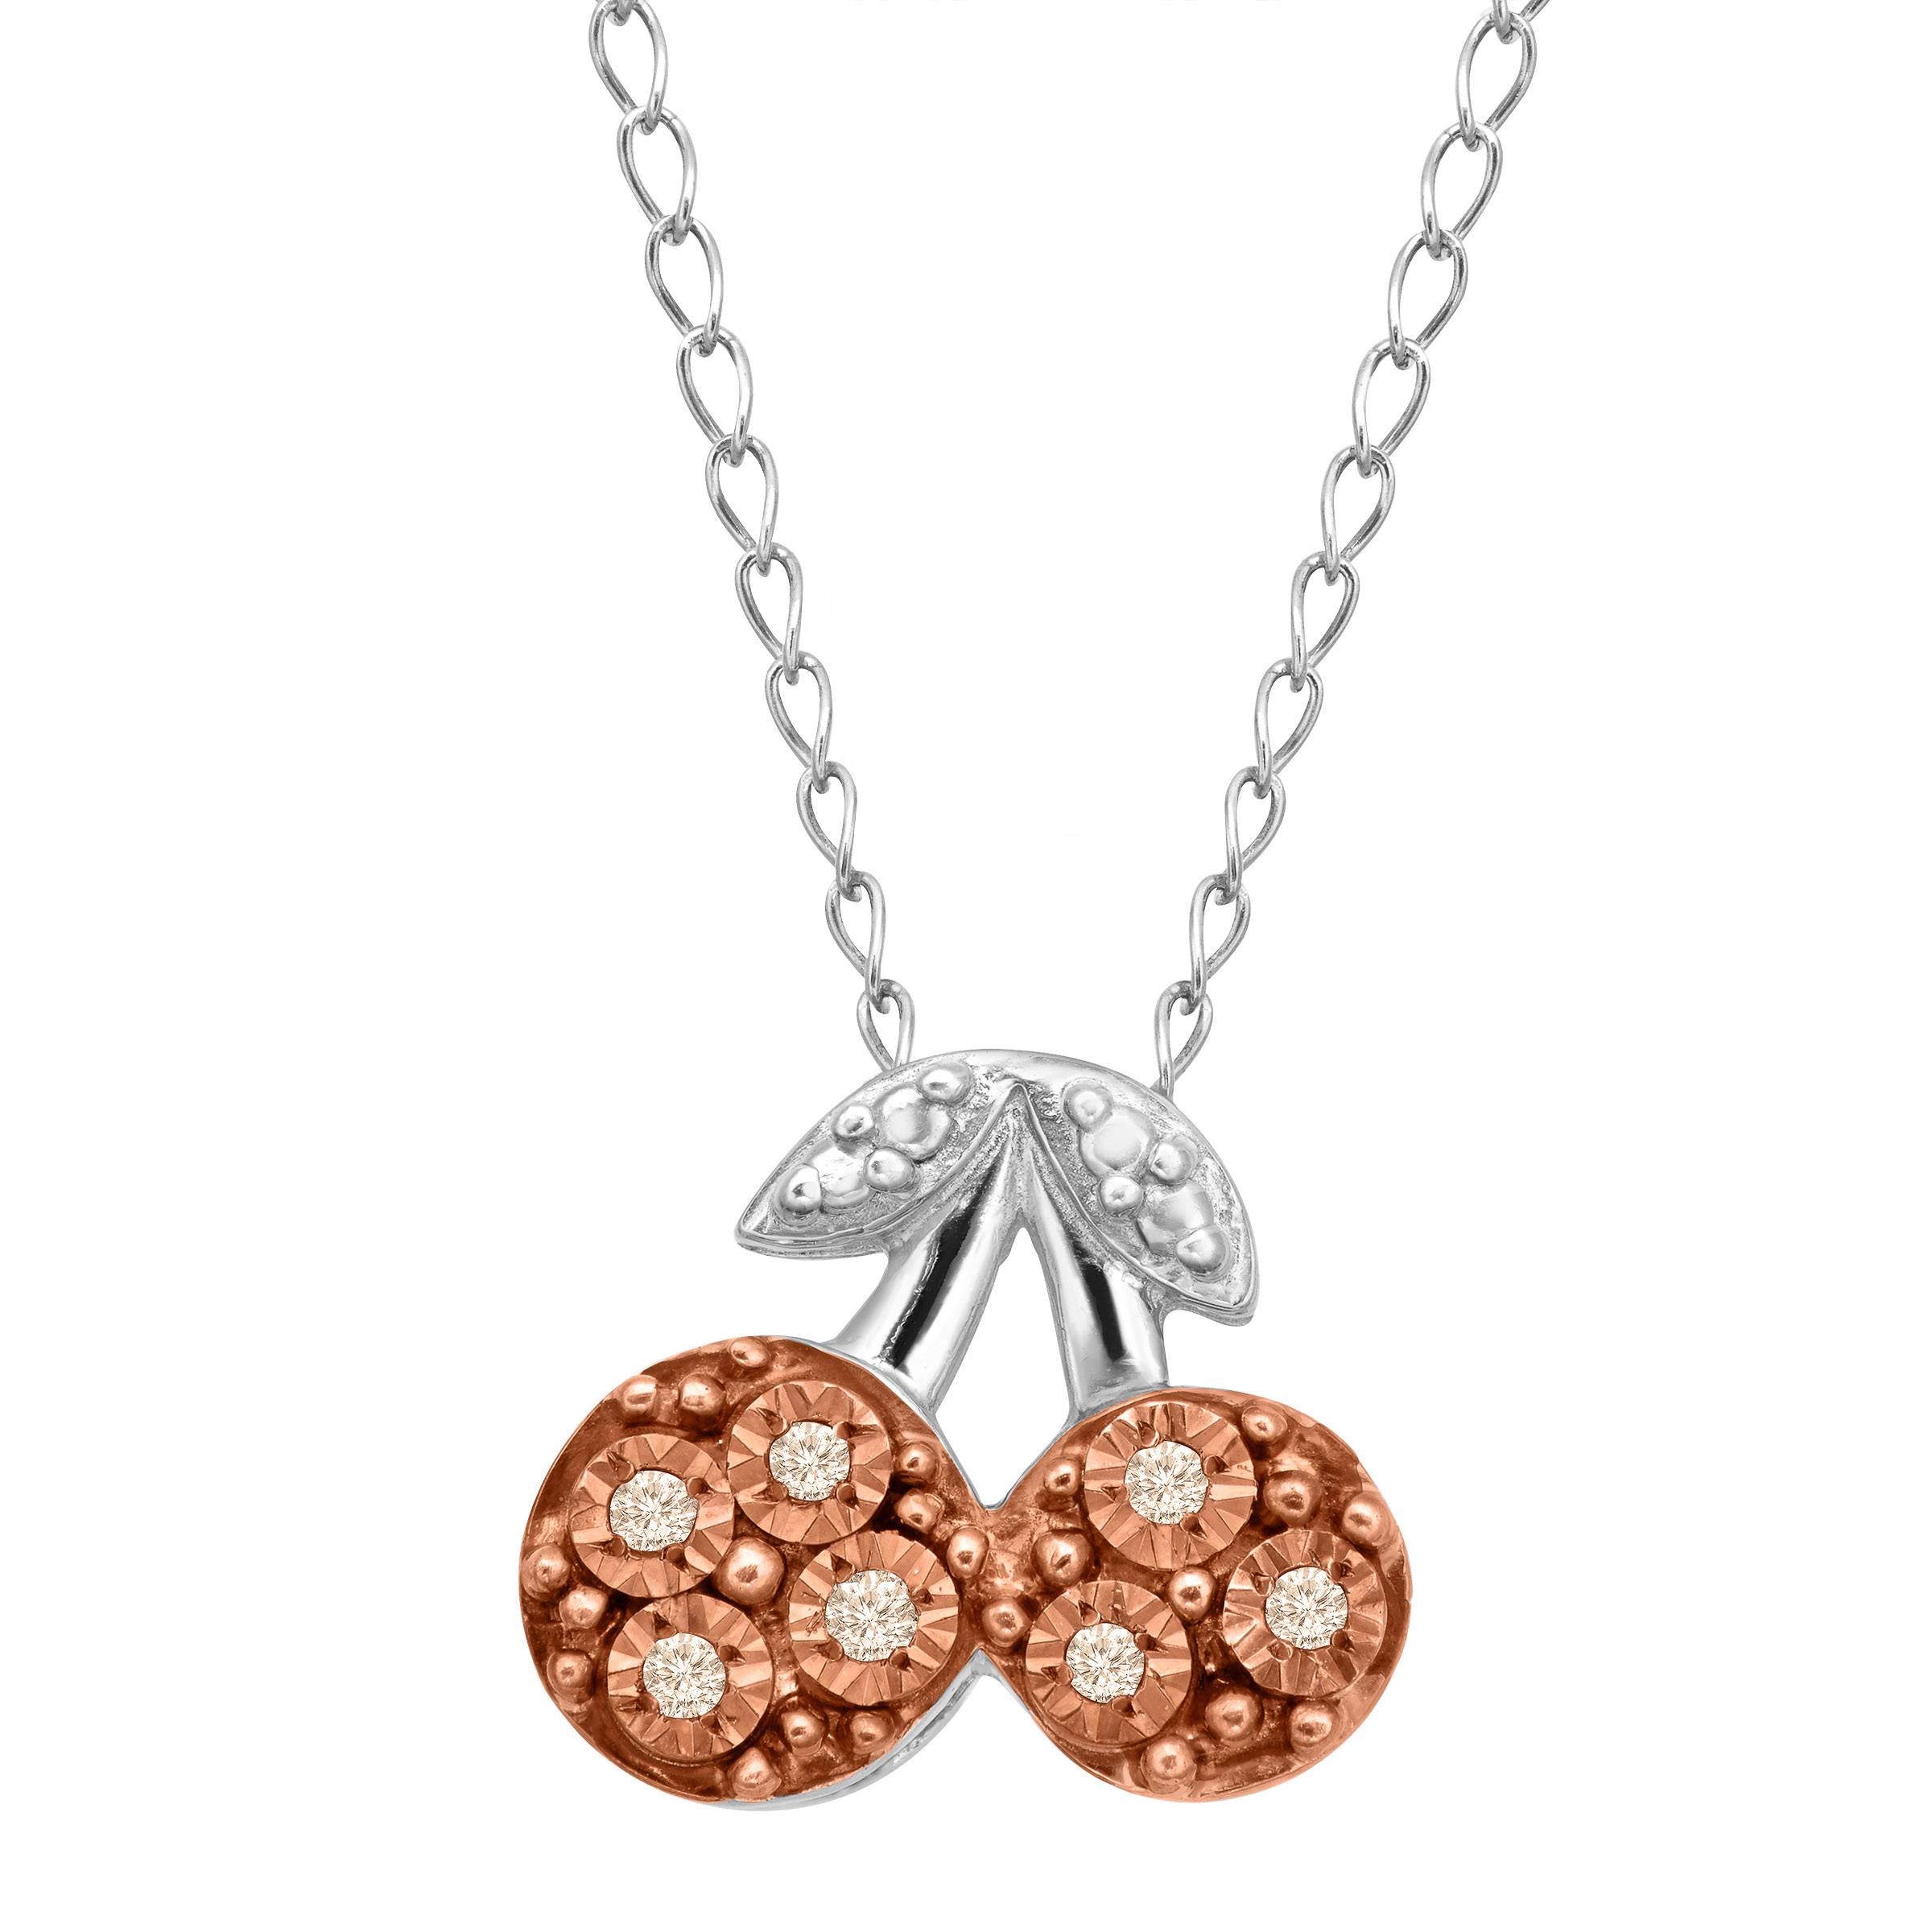 Petite Expressions  Cherry Pendant Necklace with Champagne Diamonds in 14kt Rose Gold-Plated Sterling Silver